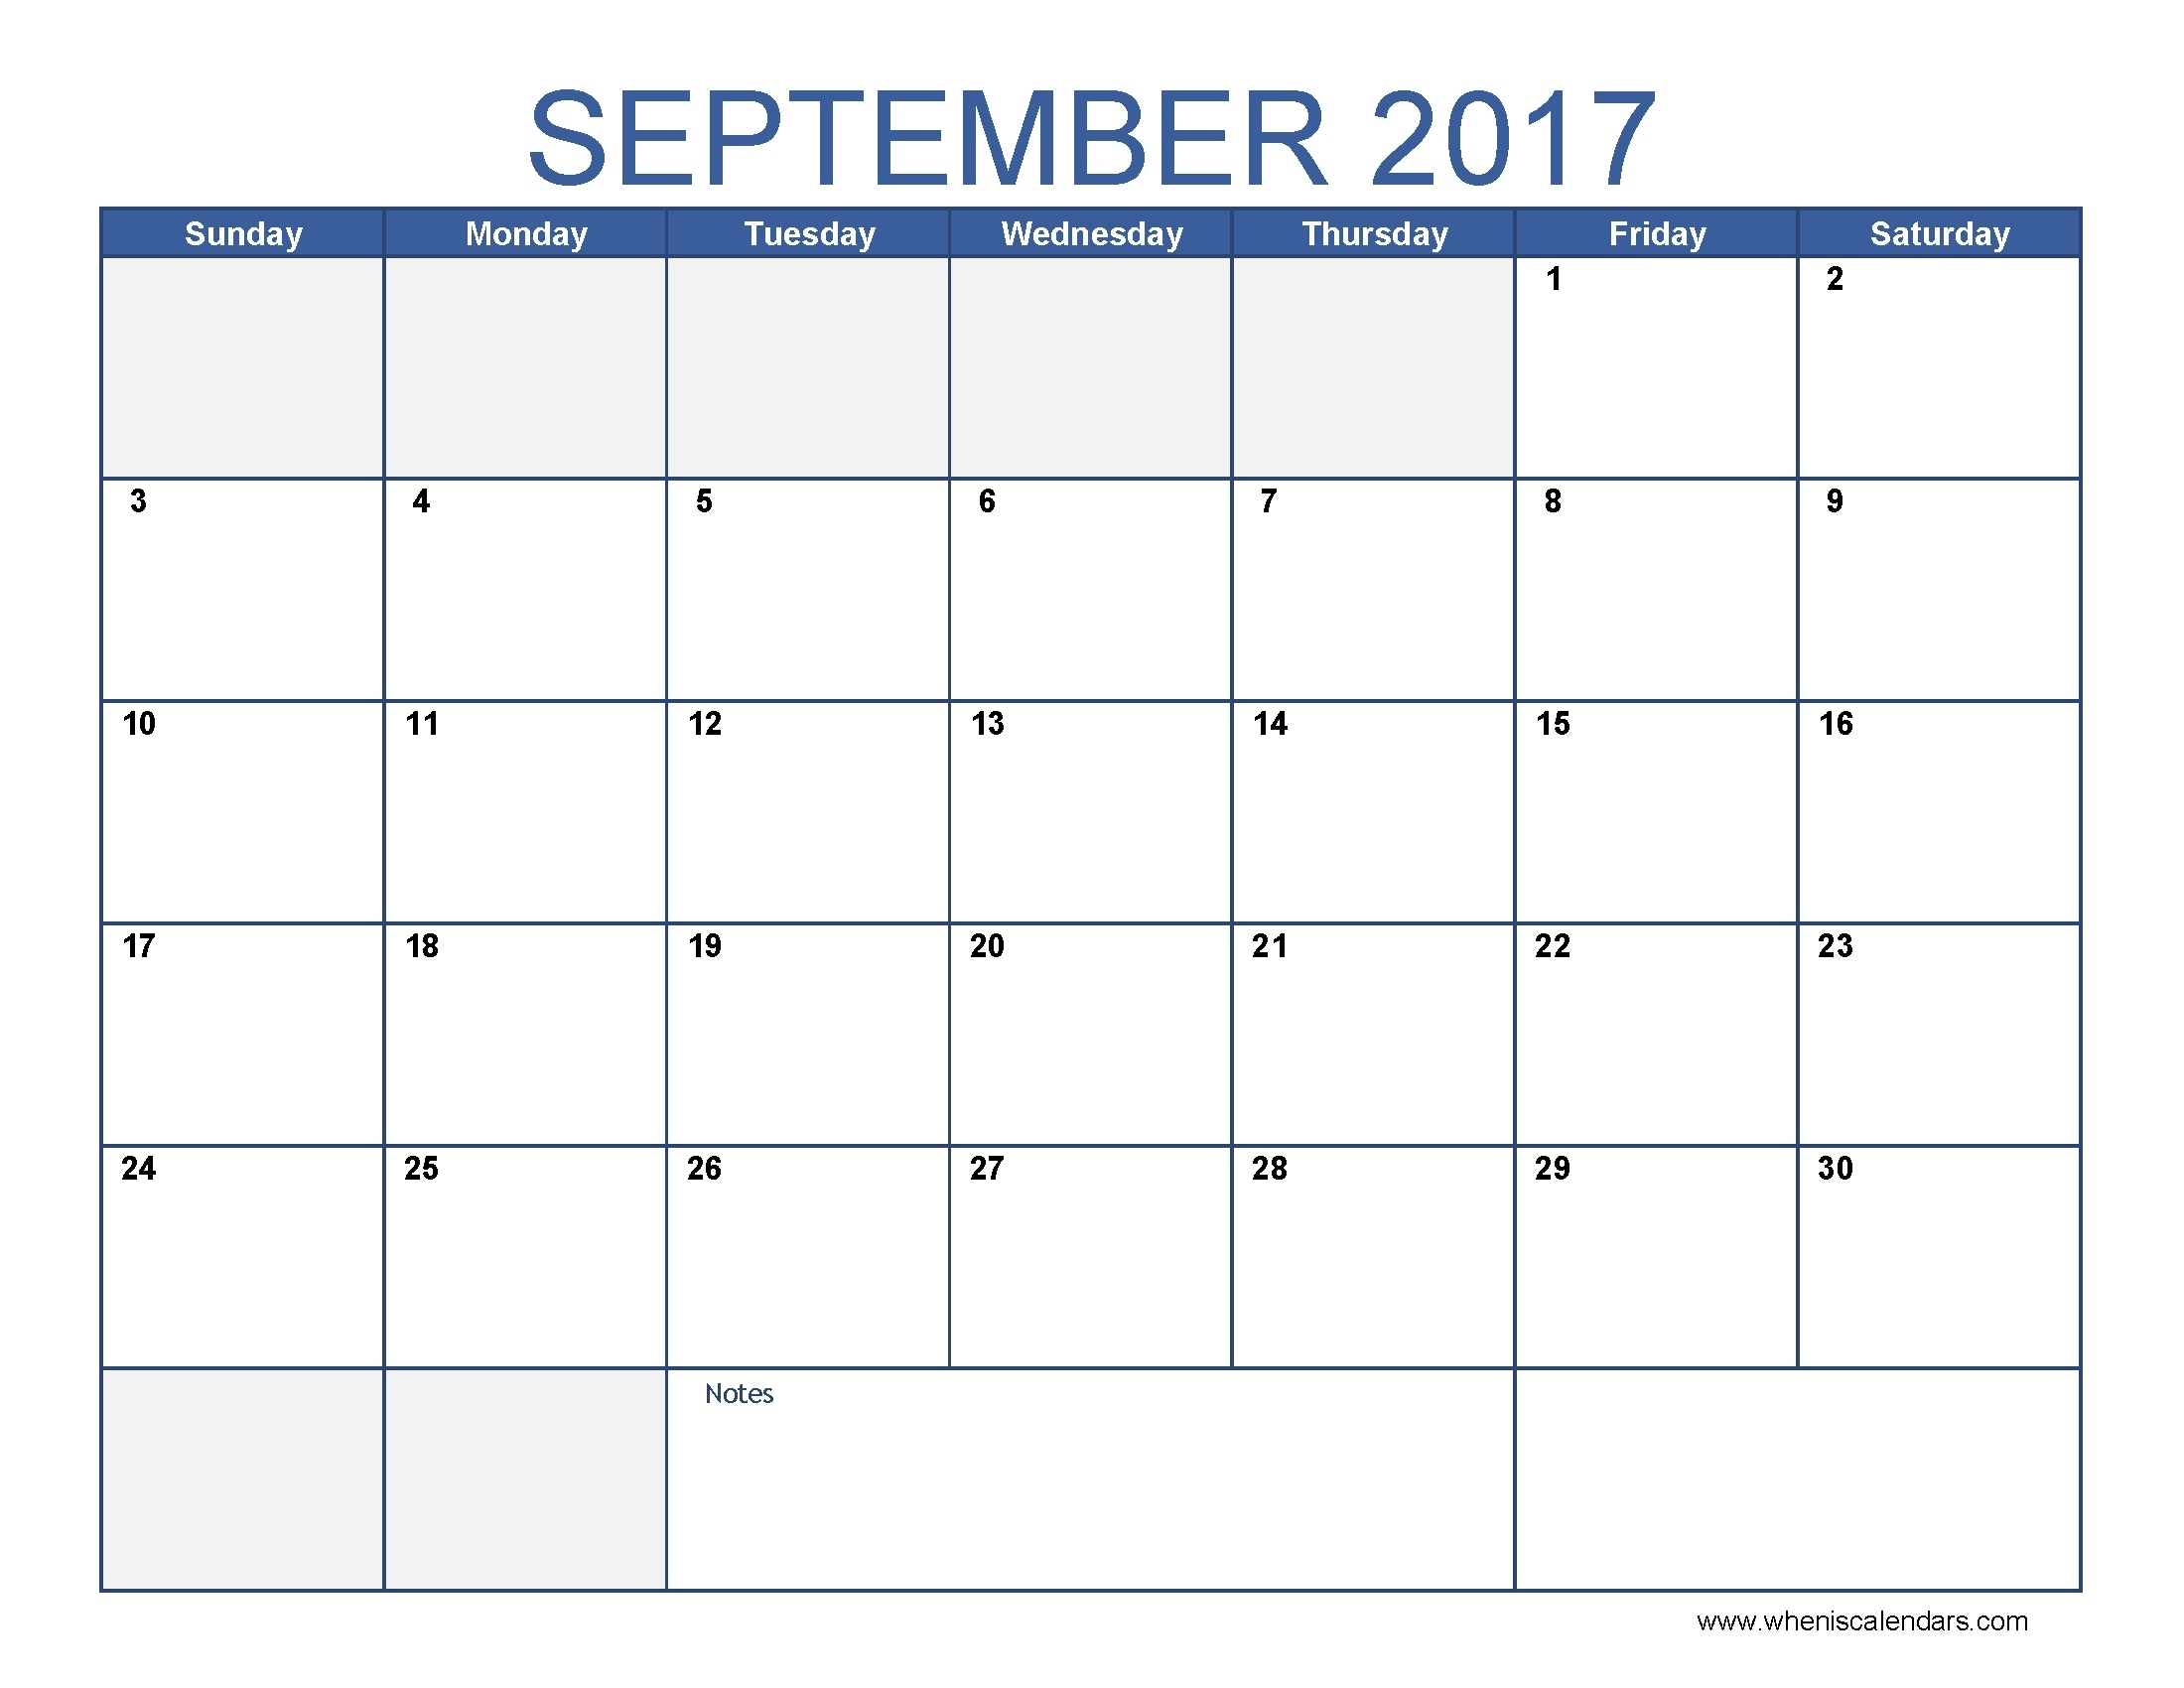 September 2017 Calendar Template | Calendar Printable Free  Calendar For The Month Of September